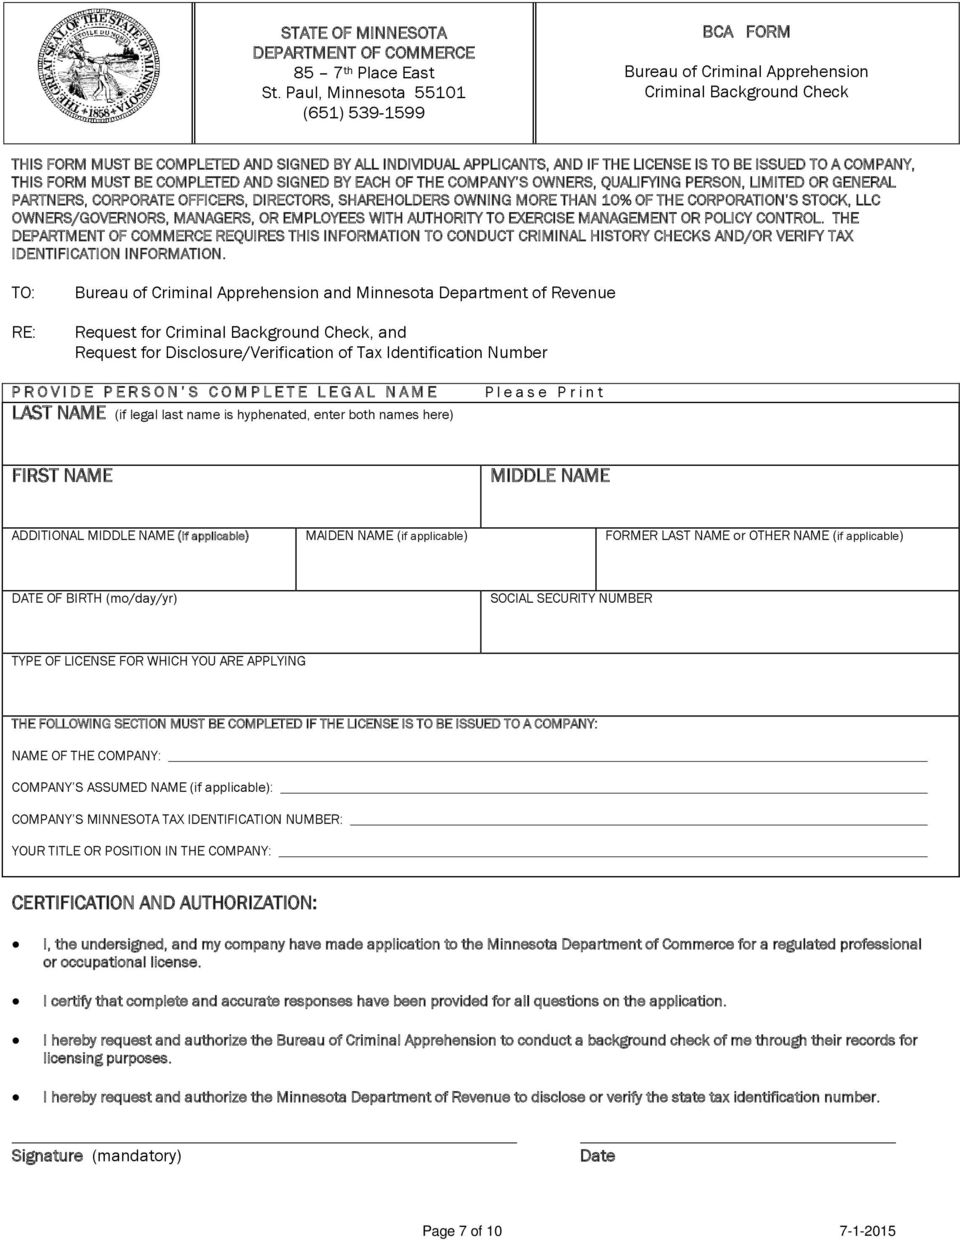 BE ISSUED TO A COMPANY, THIS FORM MUST BE COMPLETED AND SIGNED BY EACH OF THE COMPANY S OWNERS, QUALIFYING PERSON, LIMITED OR GENERAL PARTNERS, CORPORATE OFFICERS, DIRECTORS, SHAREHOLDERS OWNING MORE